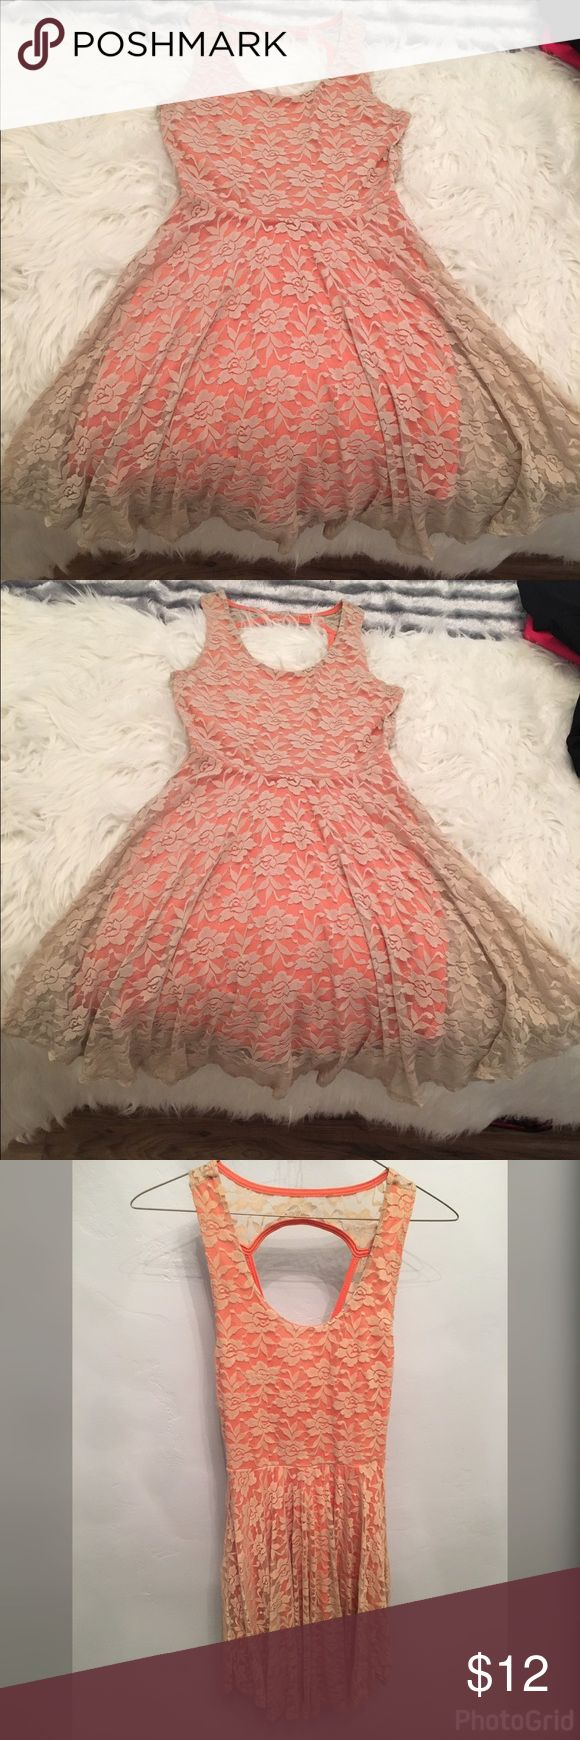 Summer tan lace dress with orange coverup🍊 This dress is great for summer and too stay cool and look cute at the same time it's very casual but nice enough for a romantic date at the beach 🌊The fabric is lace on the outer part and the lace is a tanish color while the interior part of the dress is orange it's cute can on the back of the dress has a open back design!!! True to size and in very good condition no stains or torns appear on the dress either!!! NO TRADES🚫❌. NO LOWBALLS or…